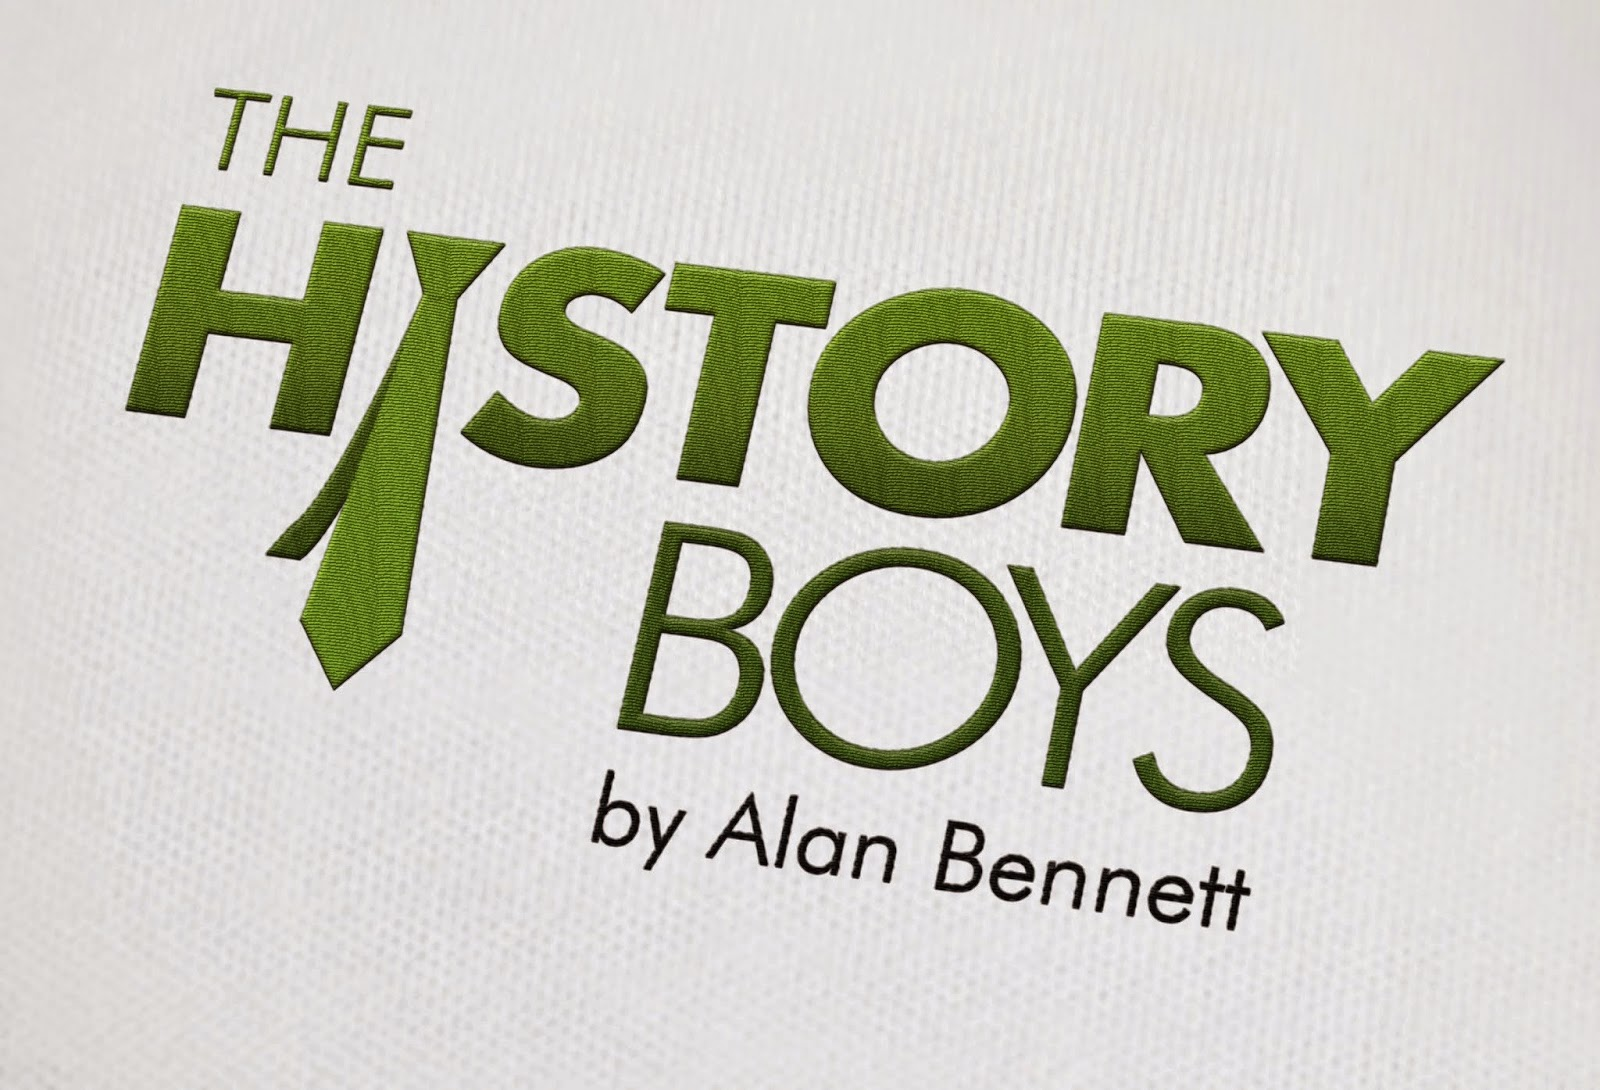 the major themes in the history boys a play by alan bennett The history boys is a play by british playwright alan bennett, first performed at   exploring themes such as the purpose of education, sexuality, gender roles, and   afterwards, mrs lintott tells irwin that the headmaster is the main enemy of.